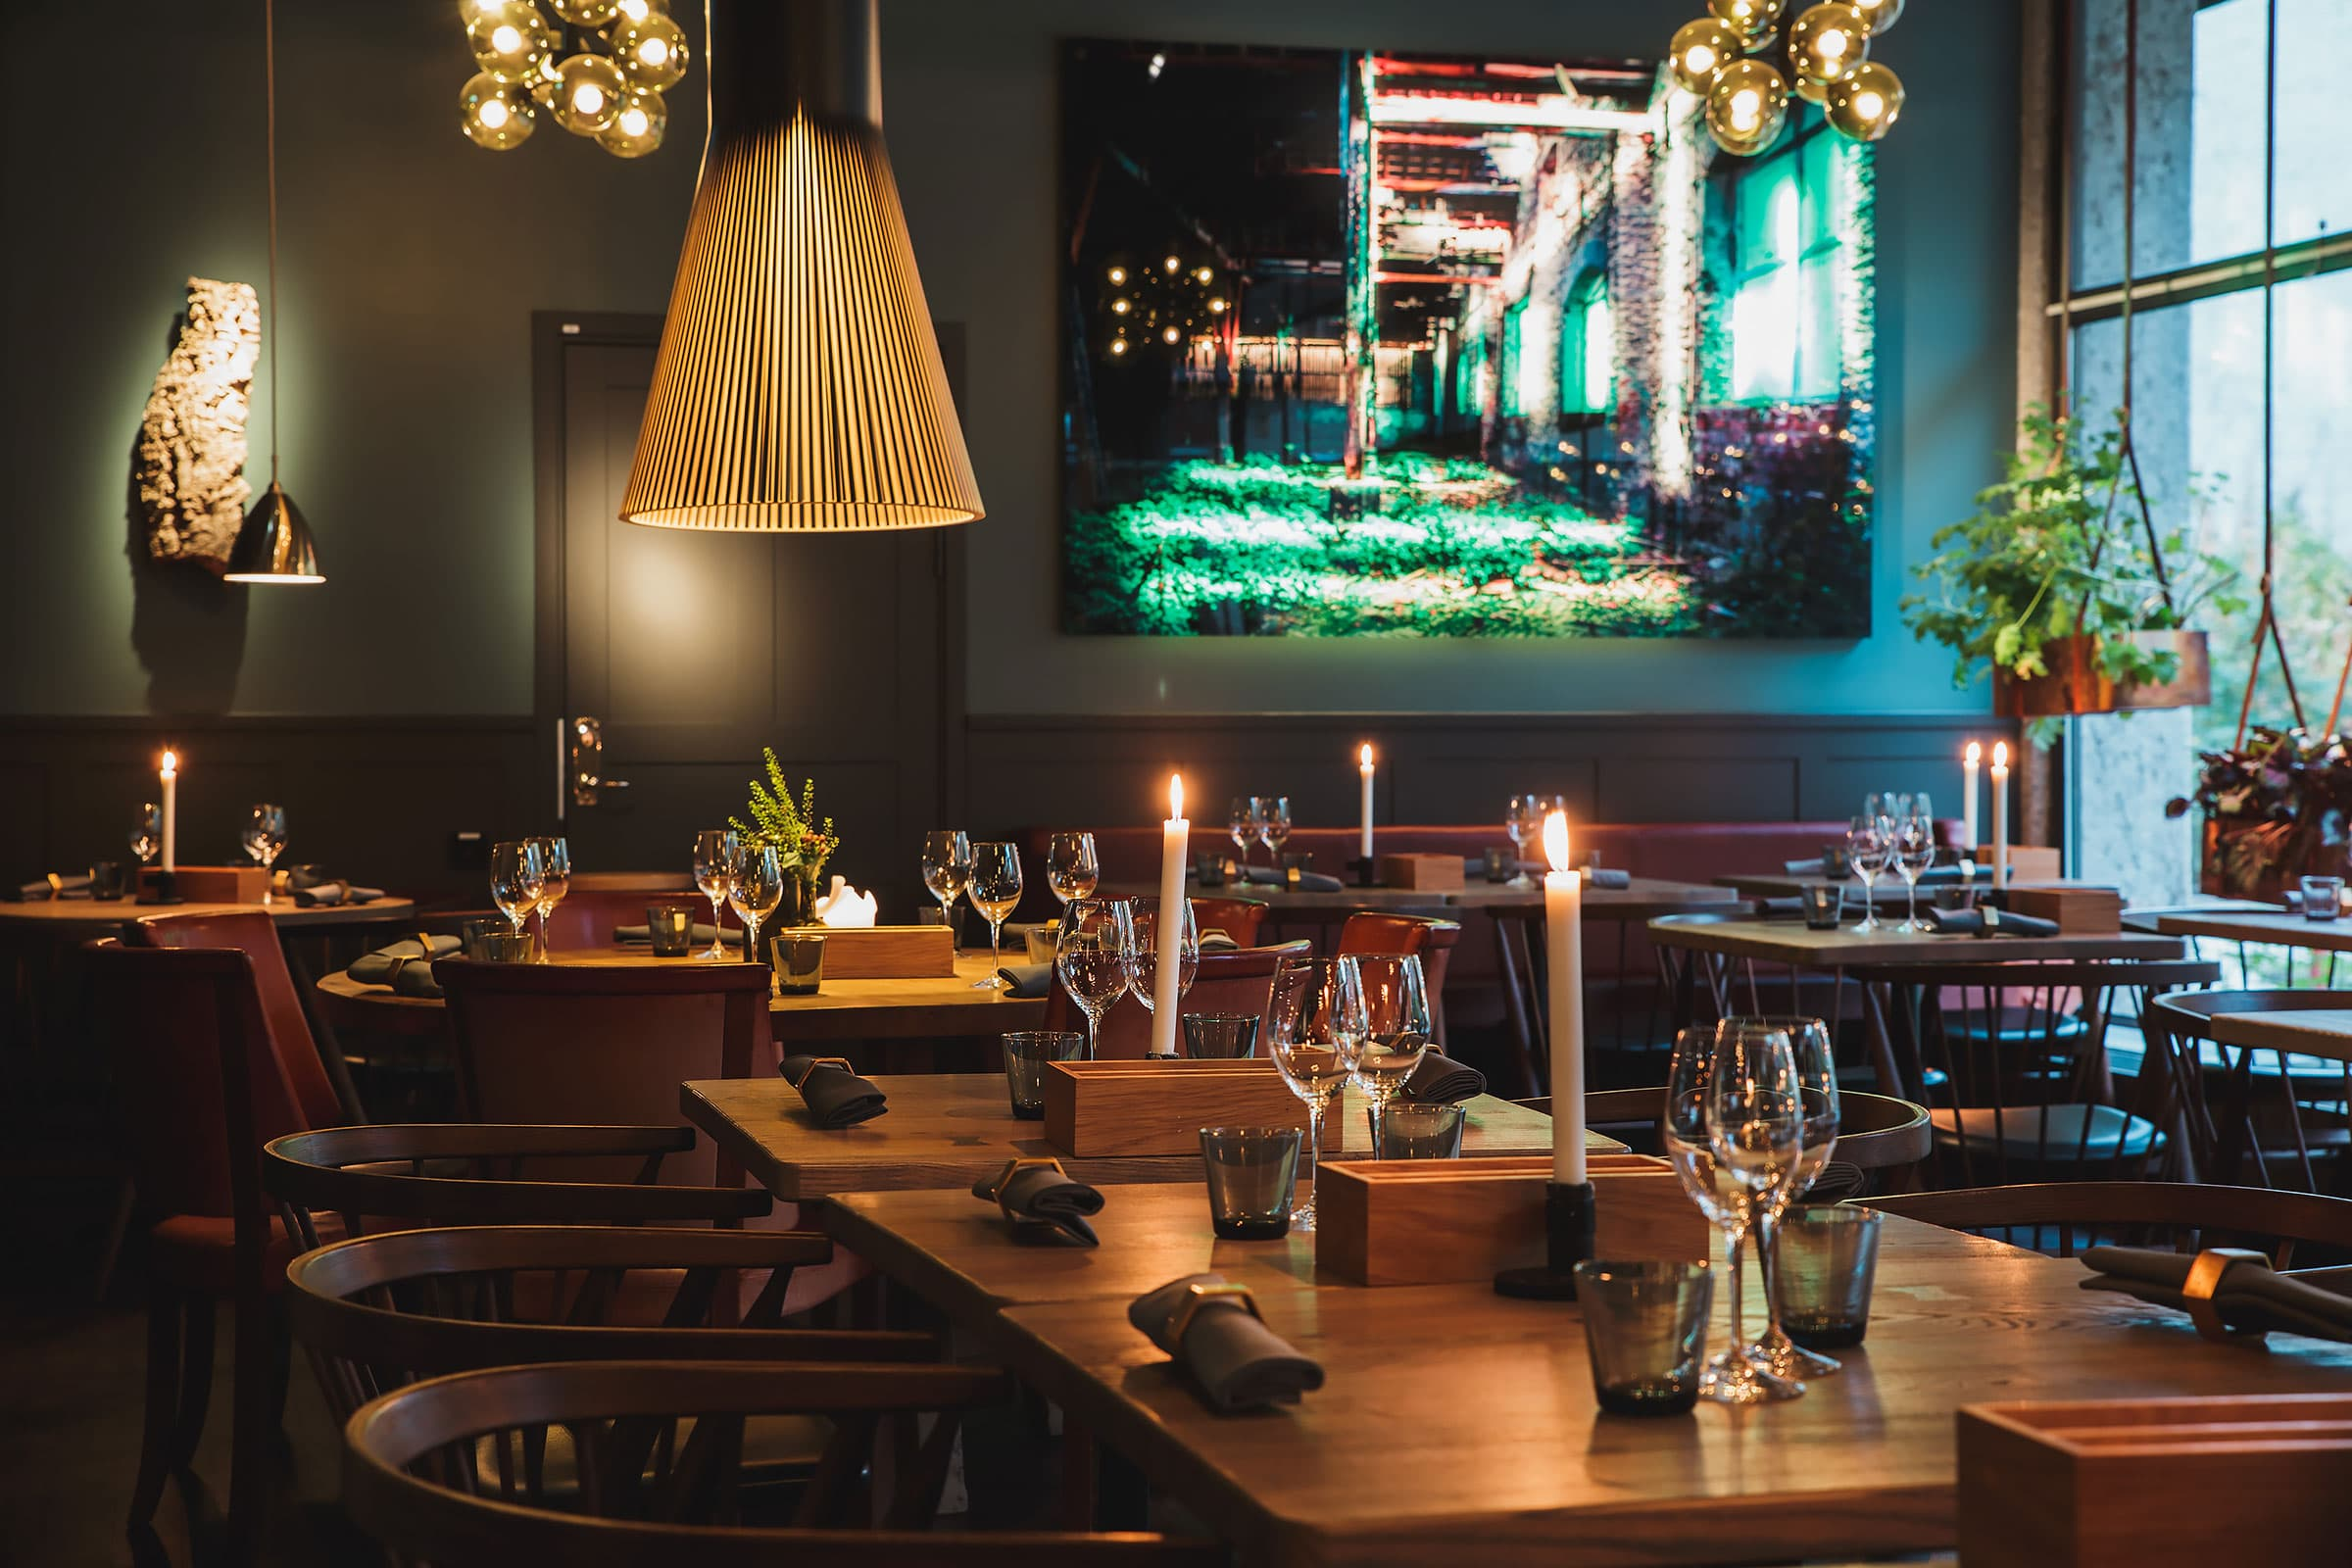 Design restaurants with cool concepts in Stockholm